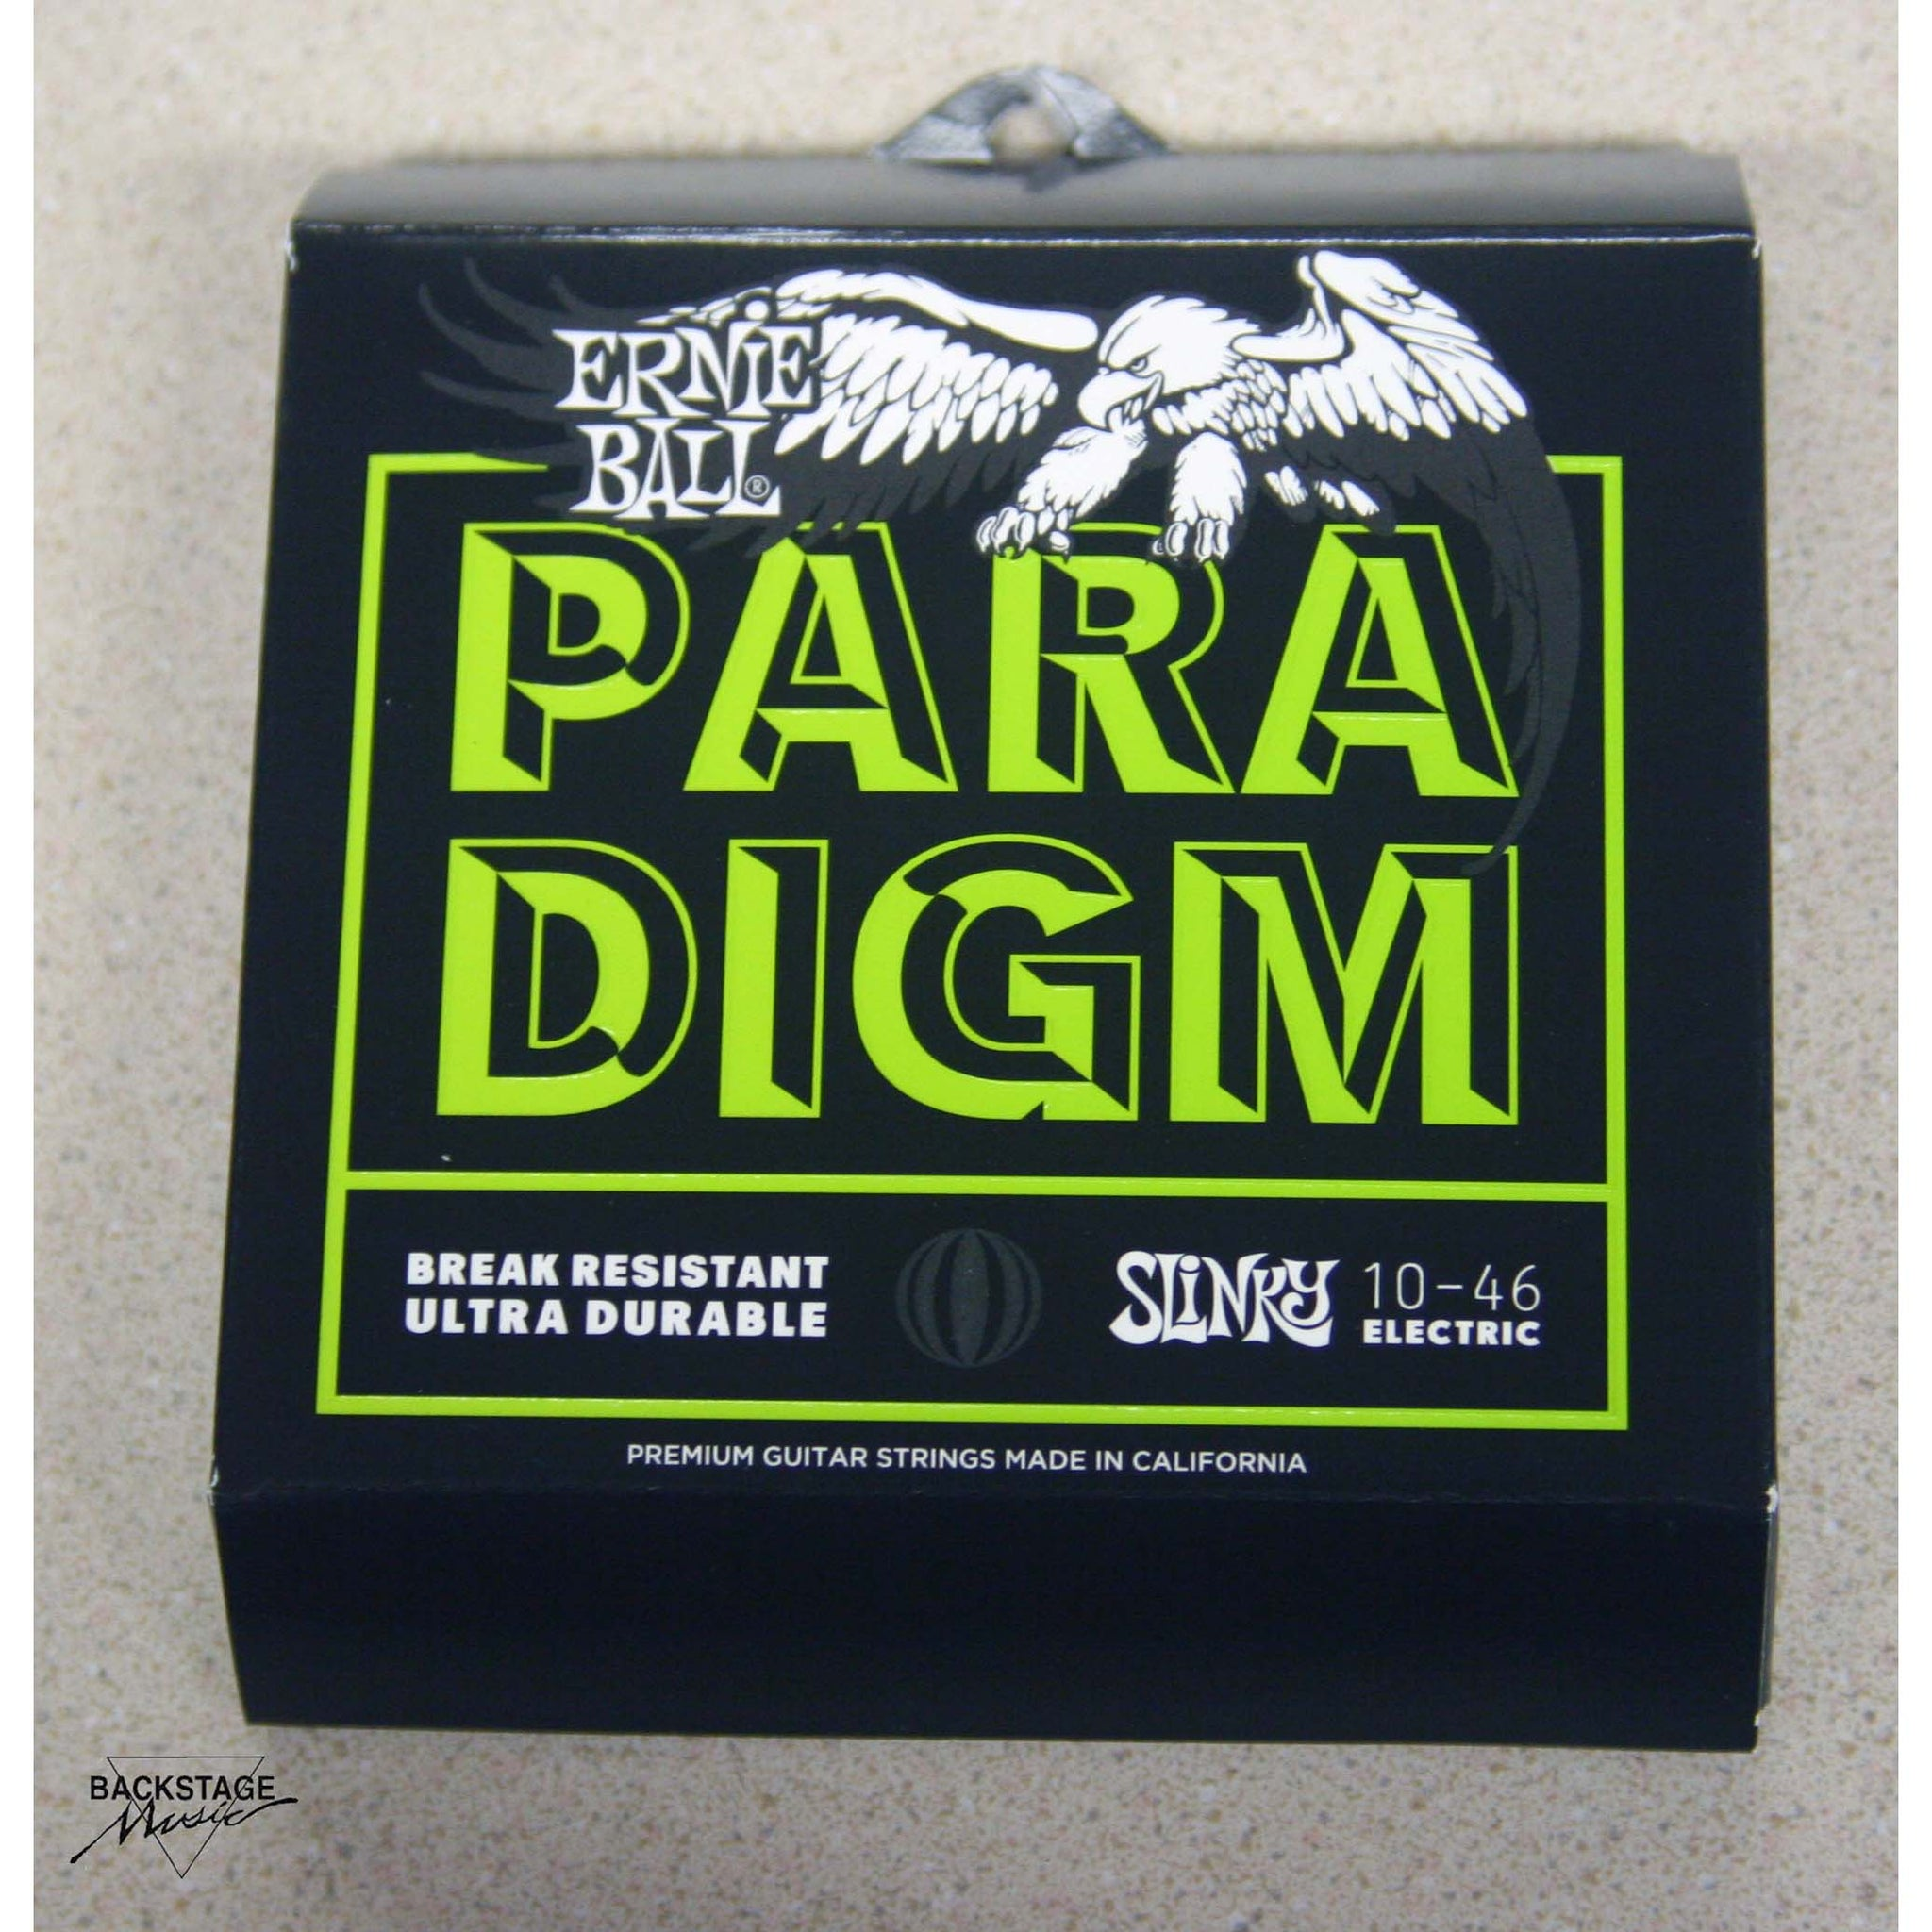 Ernie Ball Paradigm Electric Guitar Strings 10-46